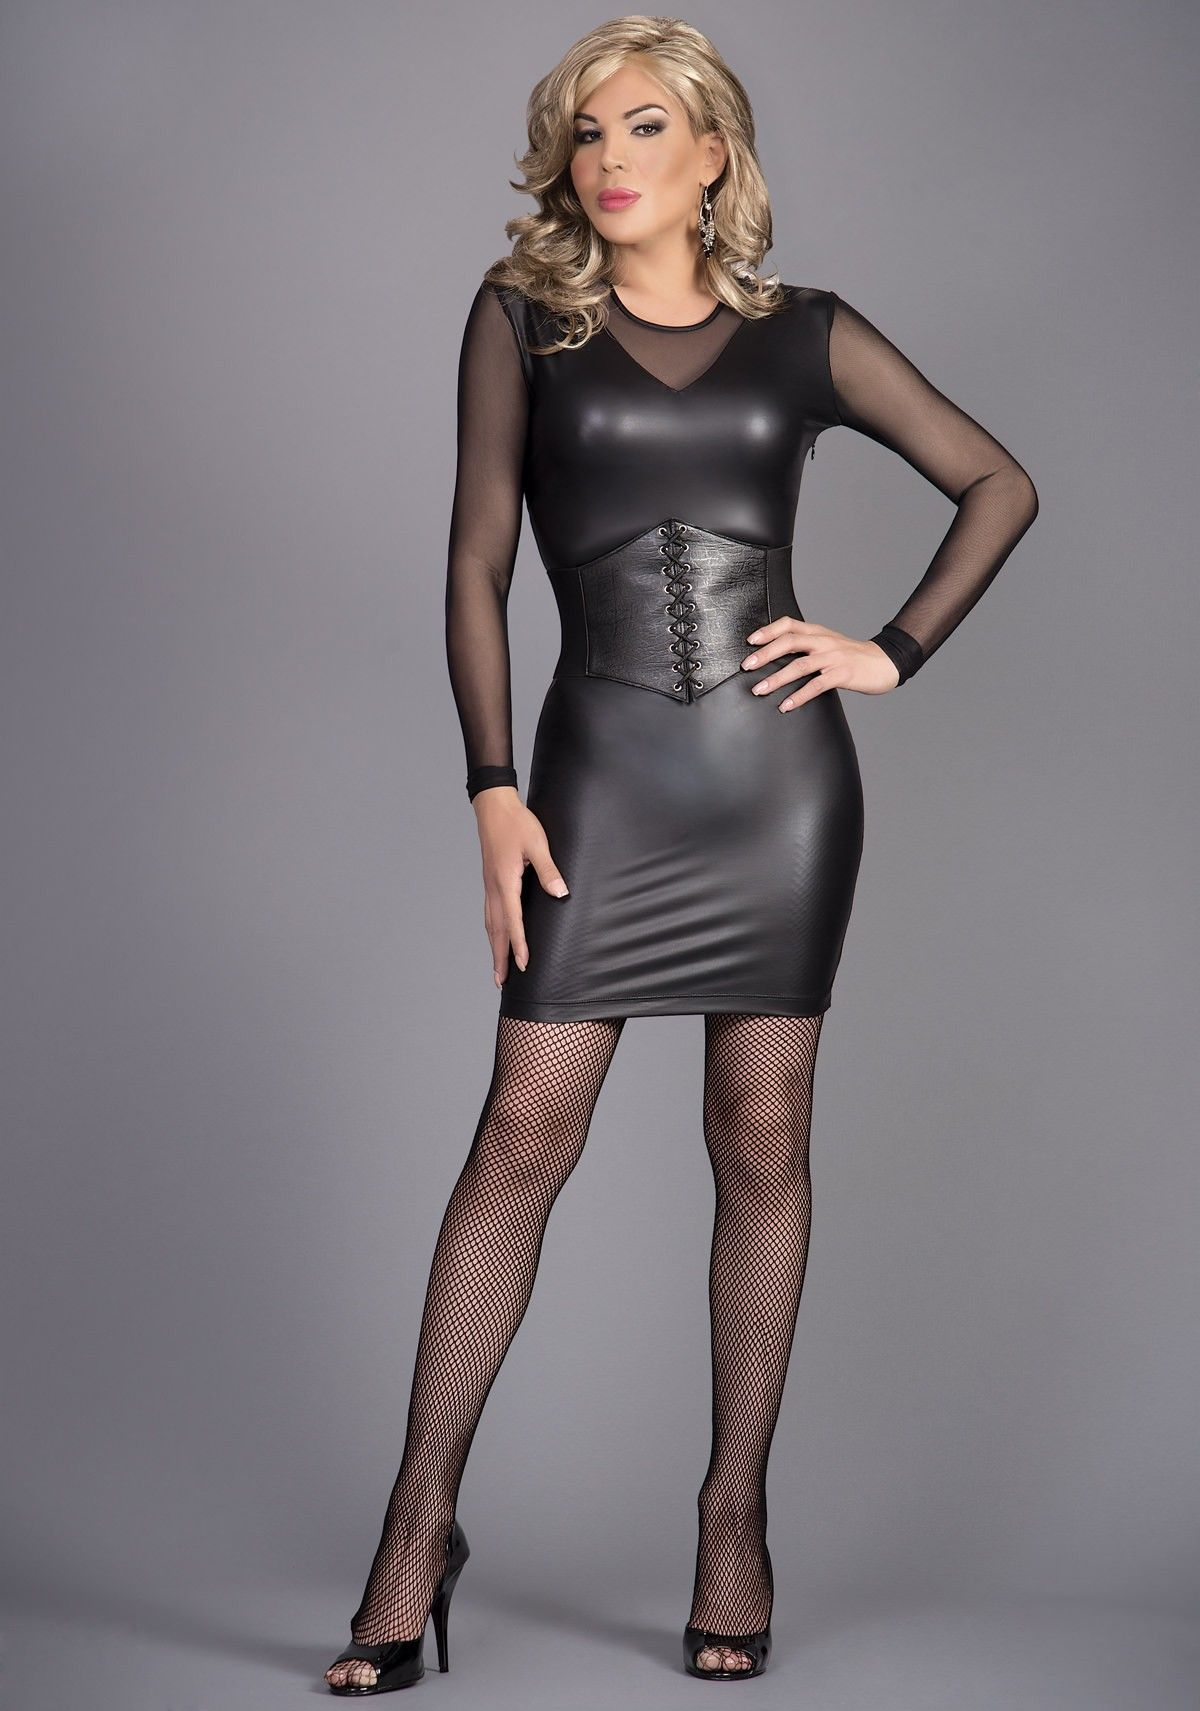 Image result for crossdressers in leather Pretty Pinterest